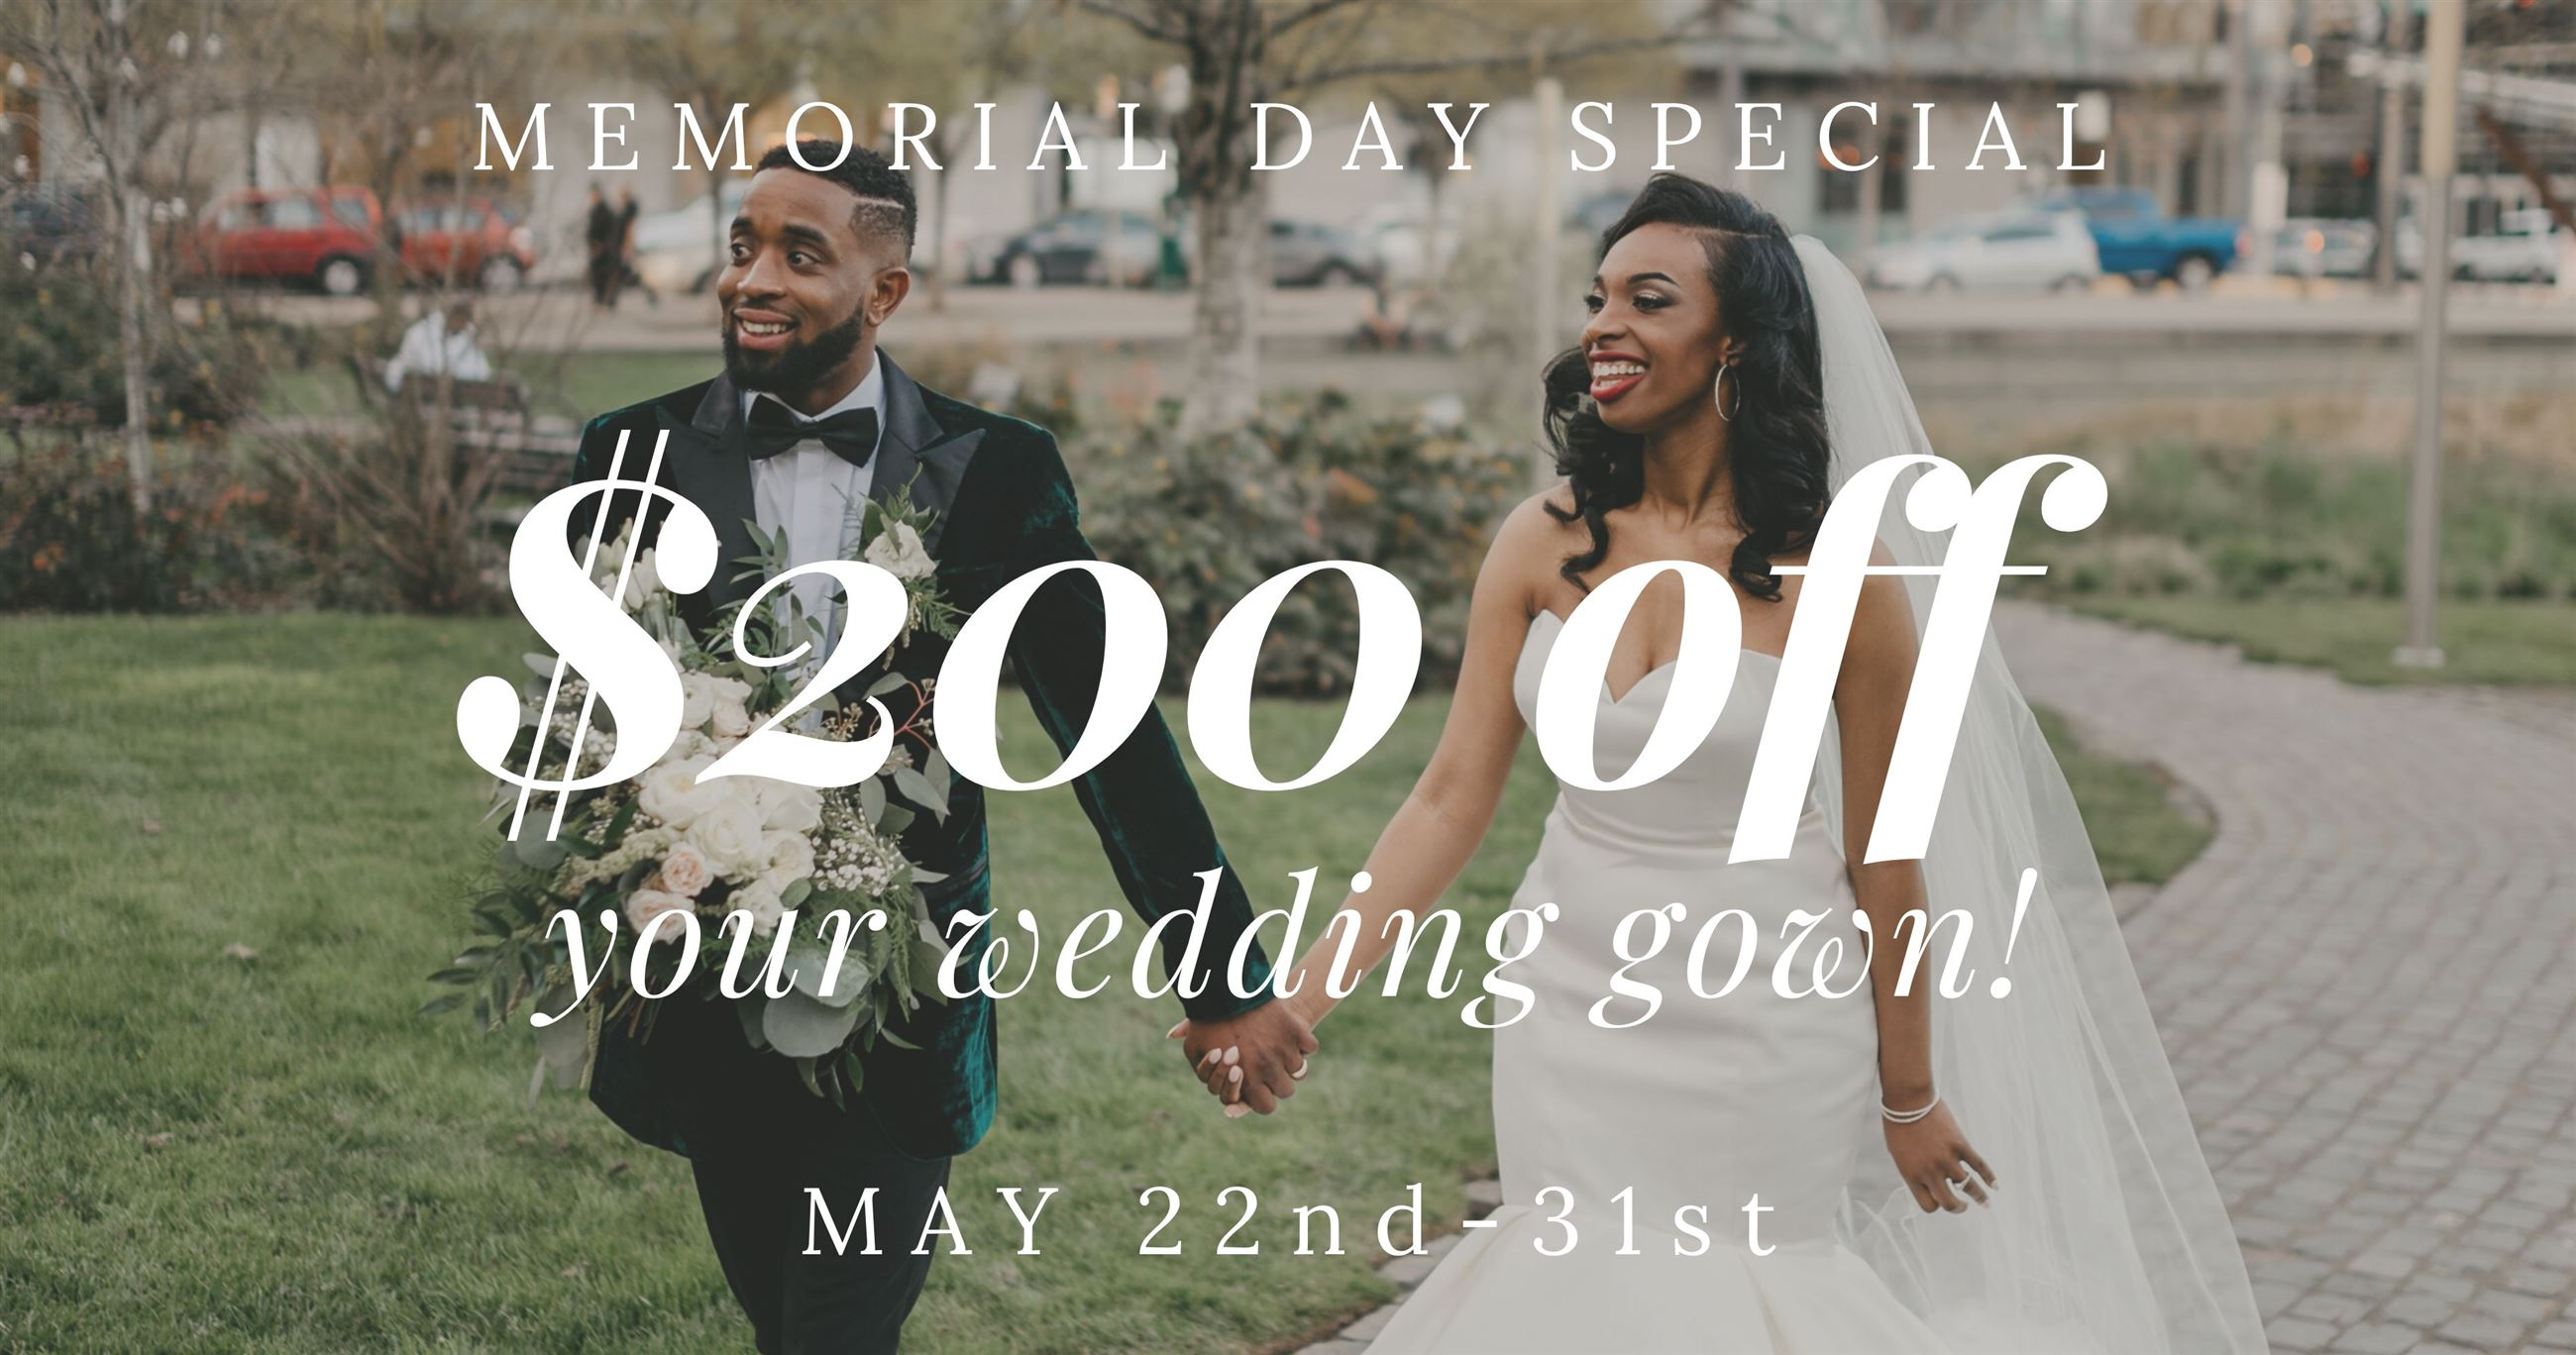 $200 off your wedding gown